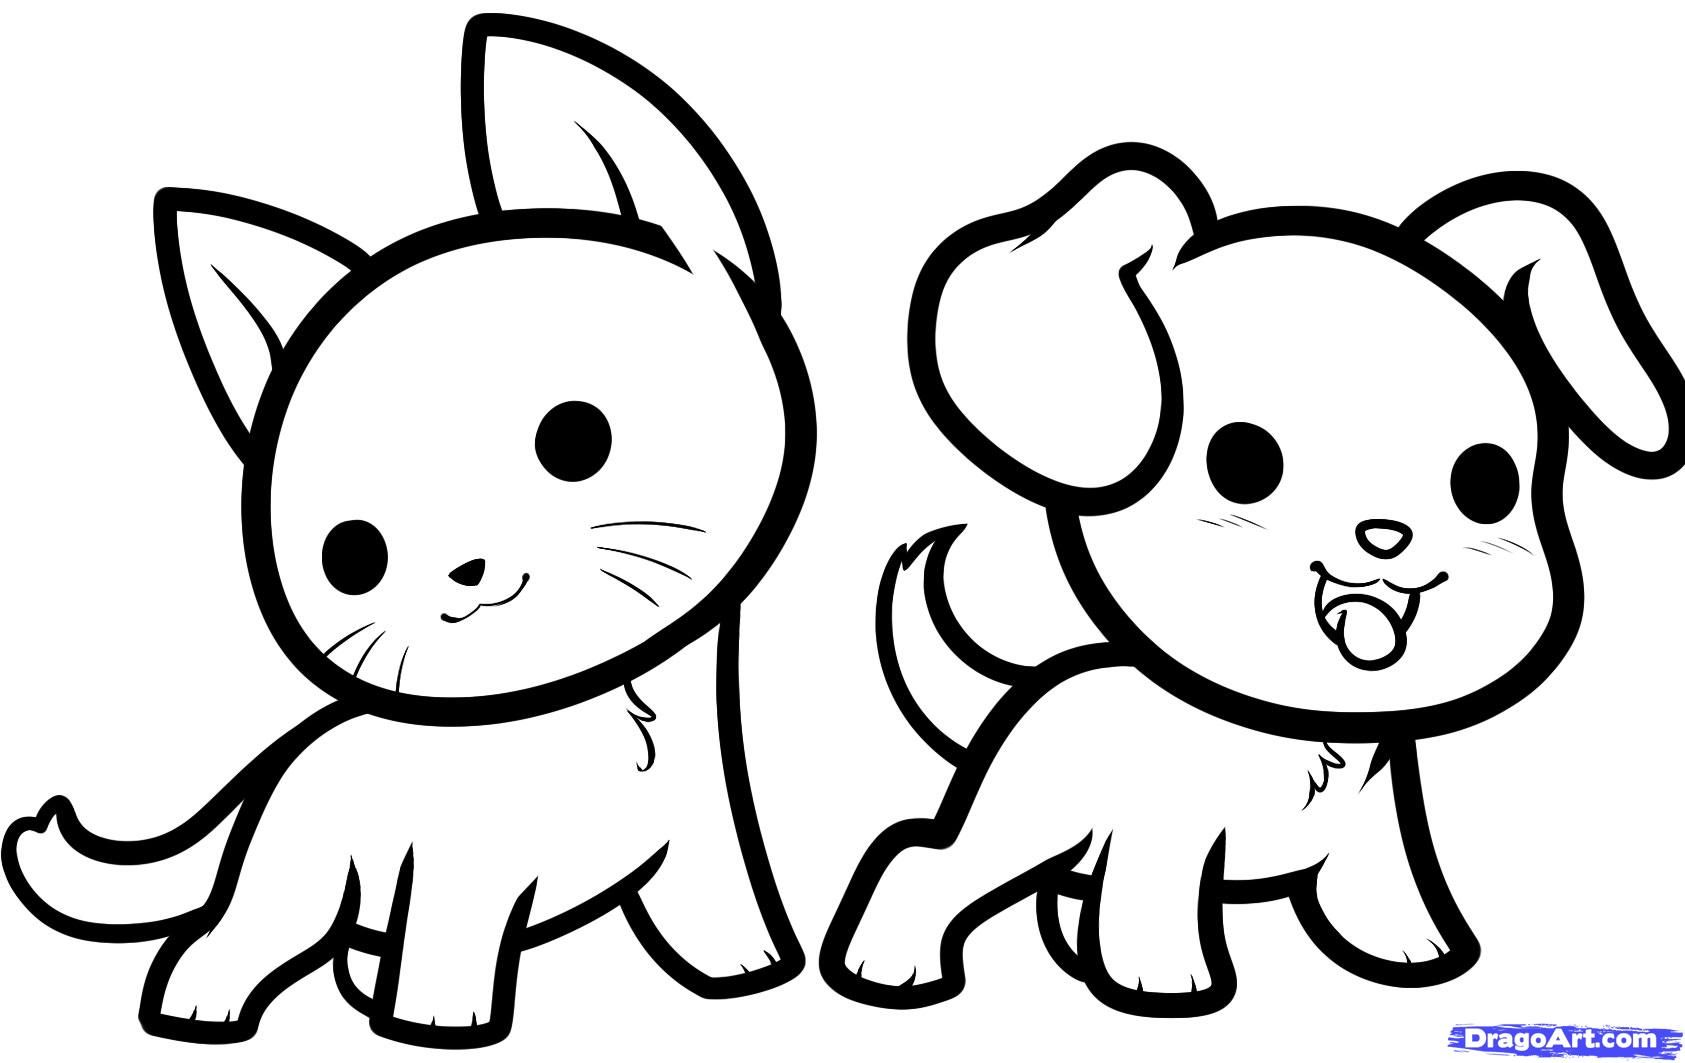 How to draw kawaii animals step by step anime animals